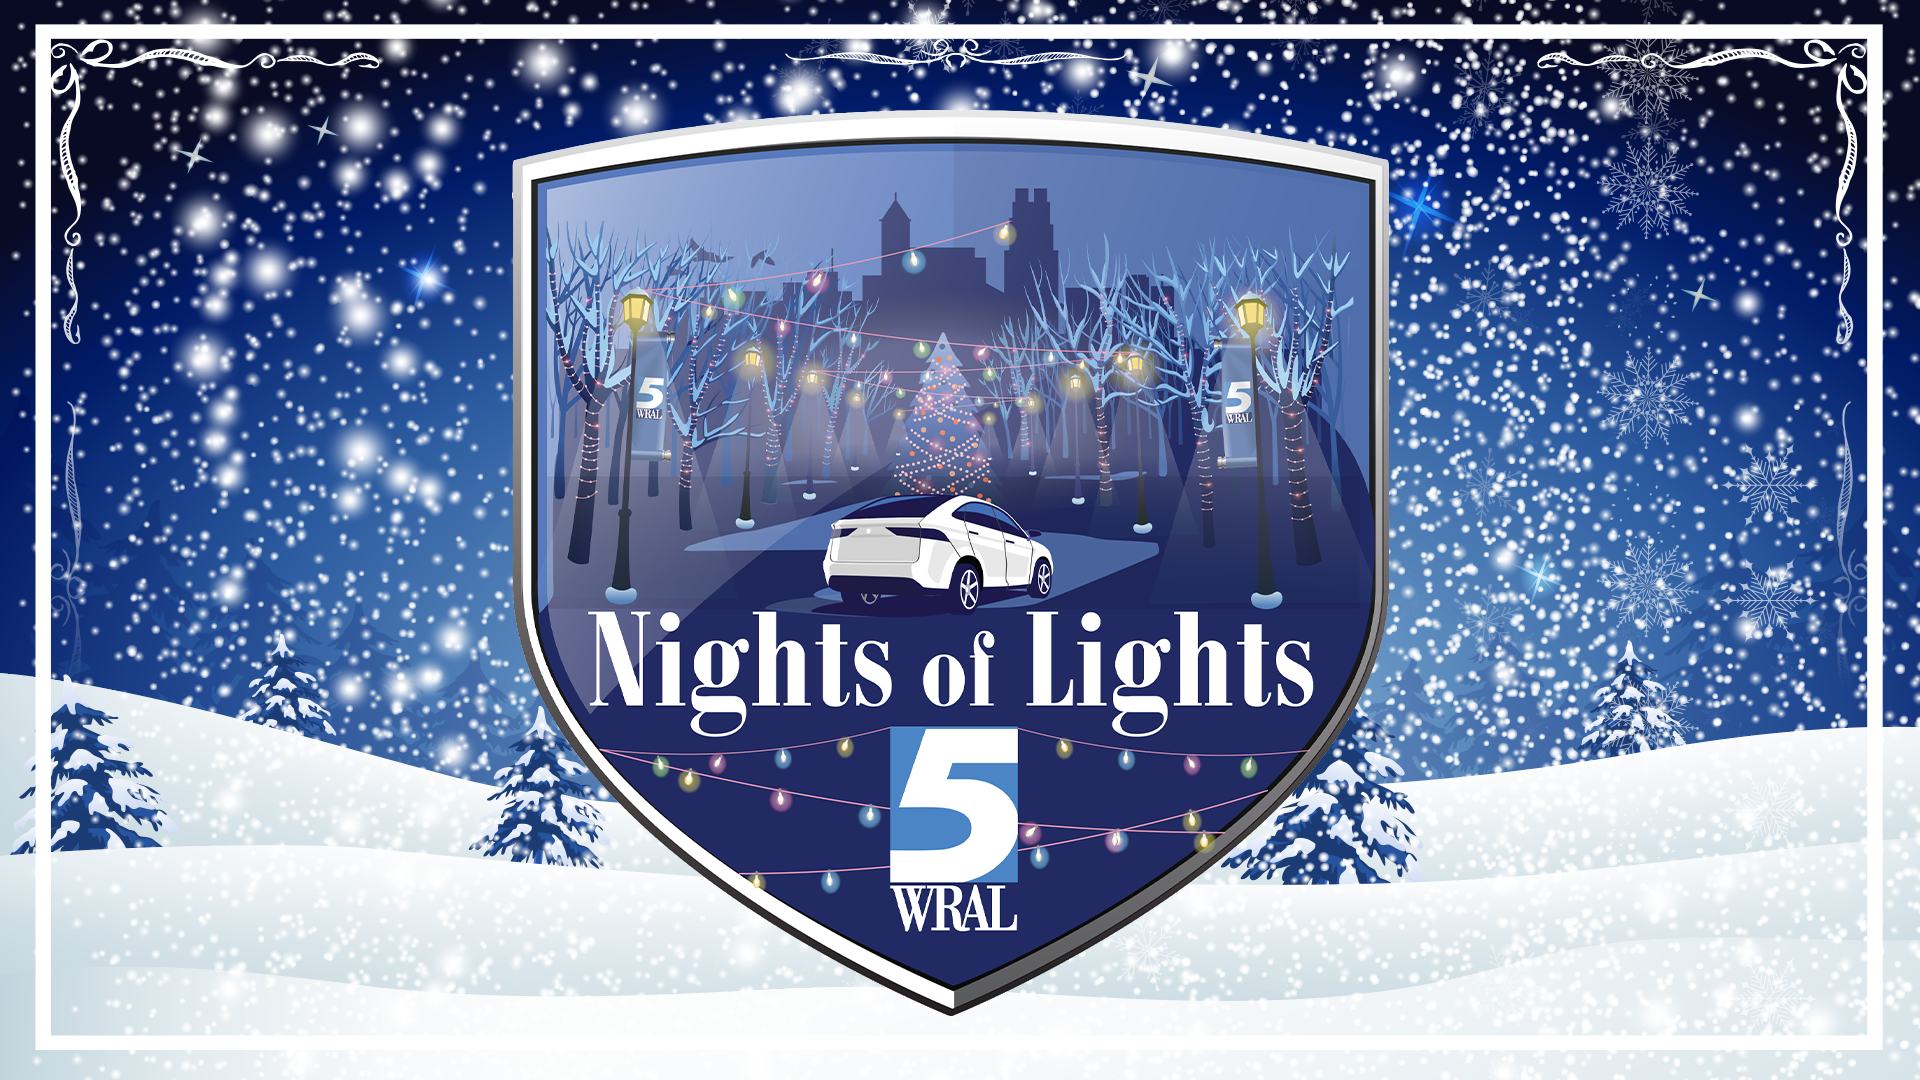 WRAL Nights of Lights Web Graphic